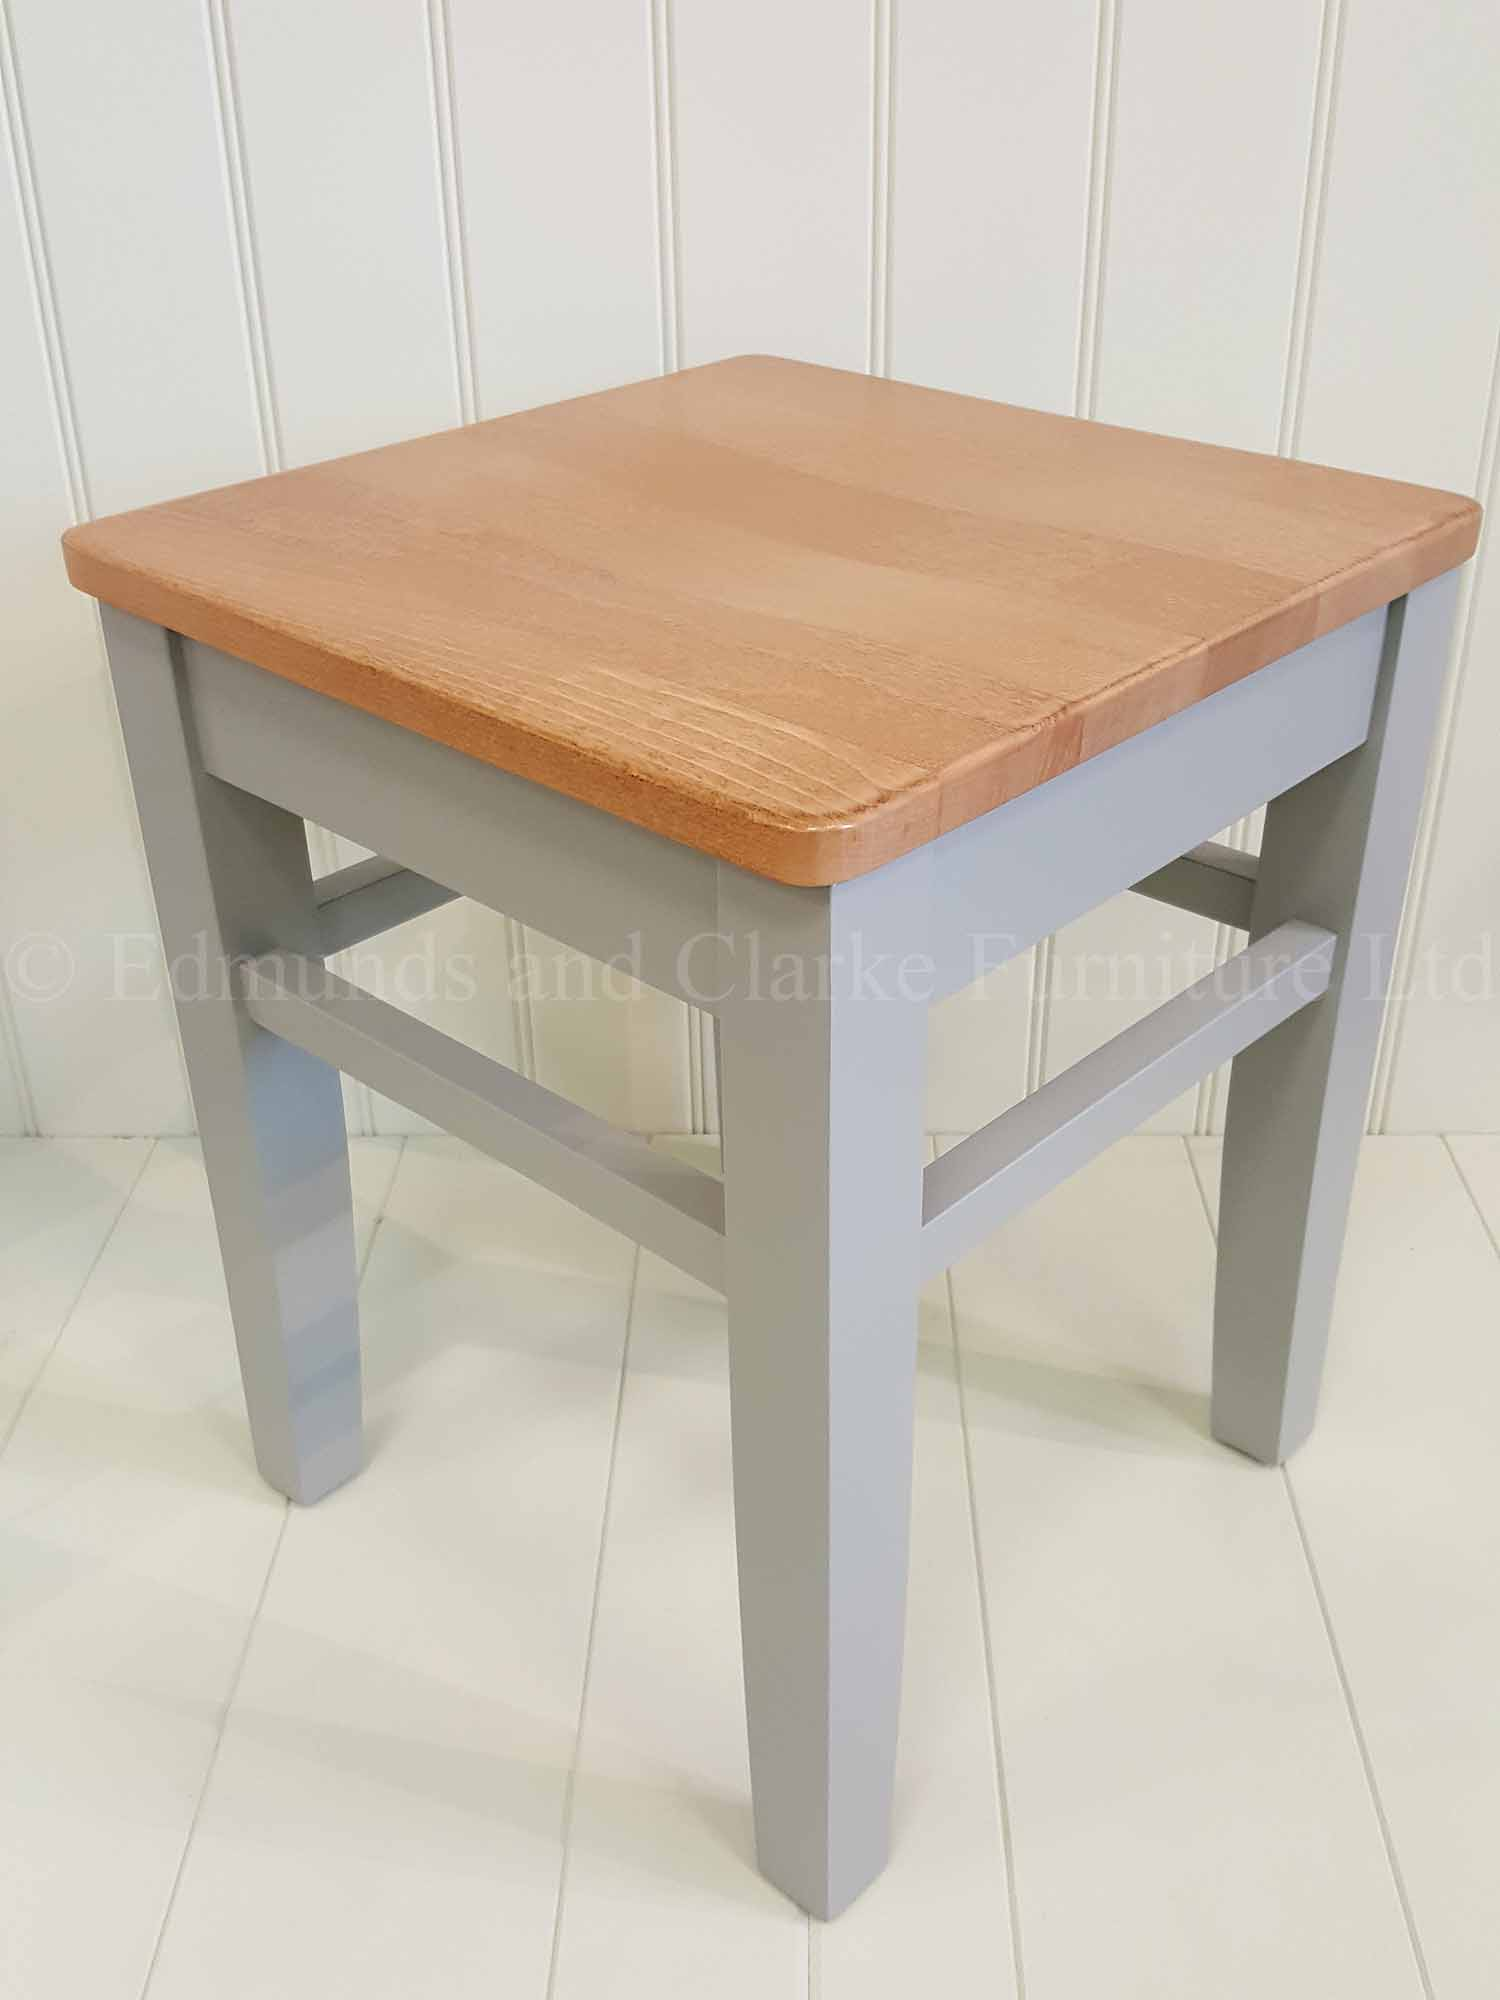 Low shaker style four leg stool with wooden top painted in a choice of colours